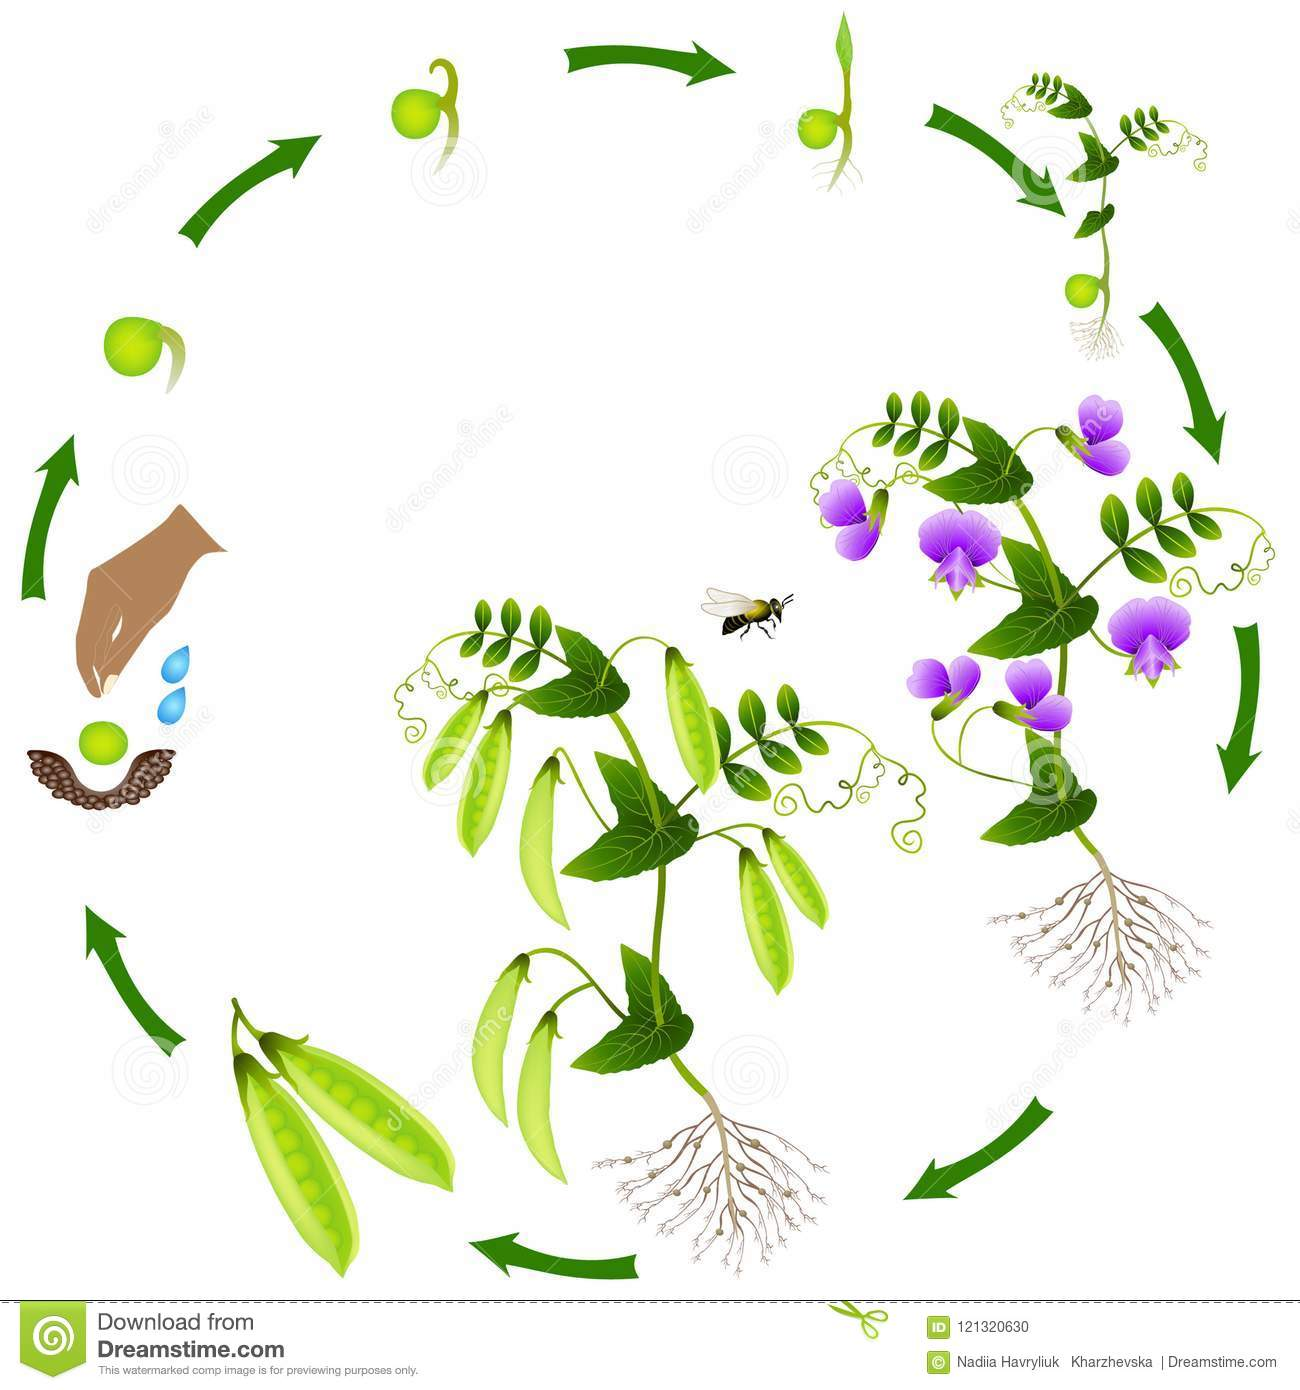 The Life Cycle Of A Pea Plant Is Isolated On A White